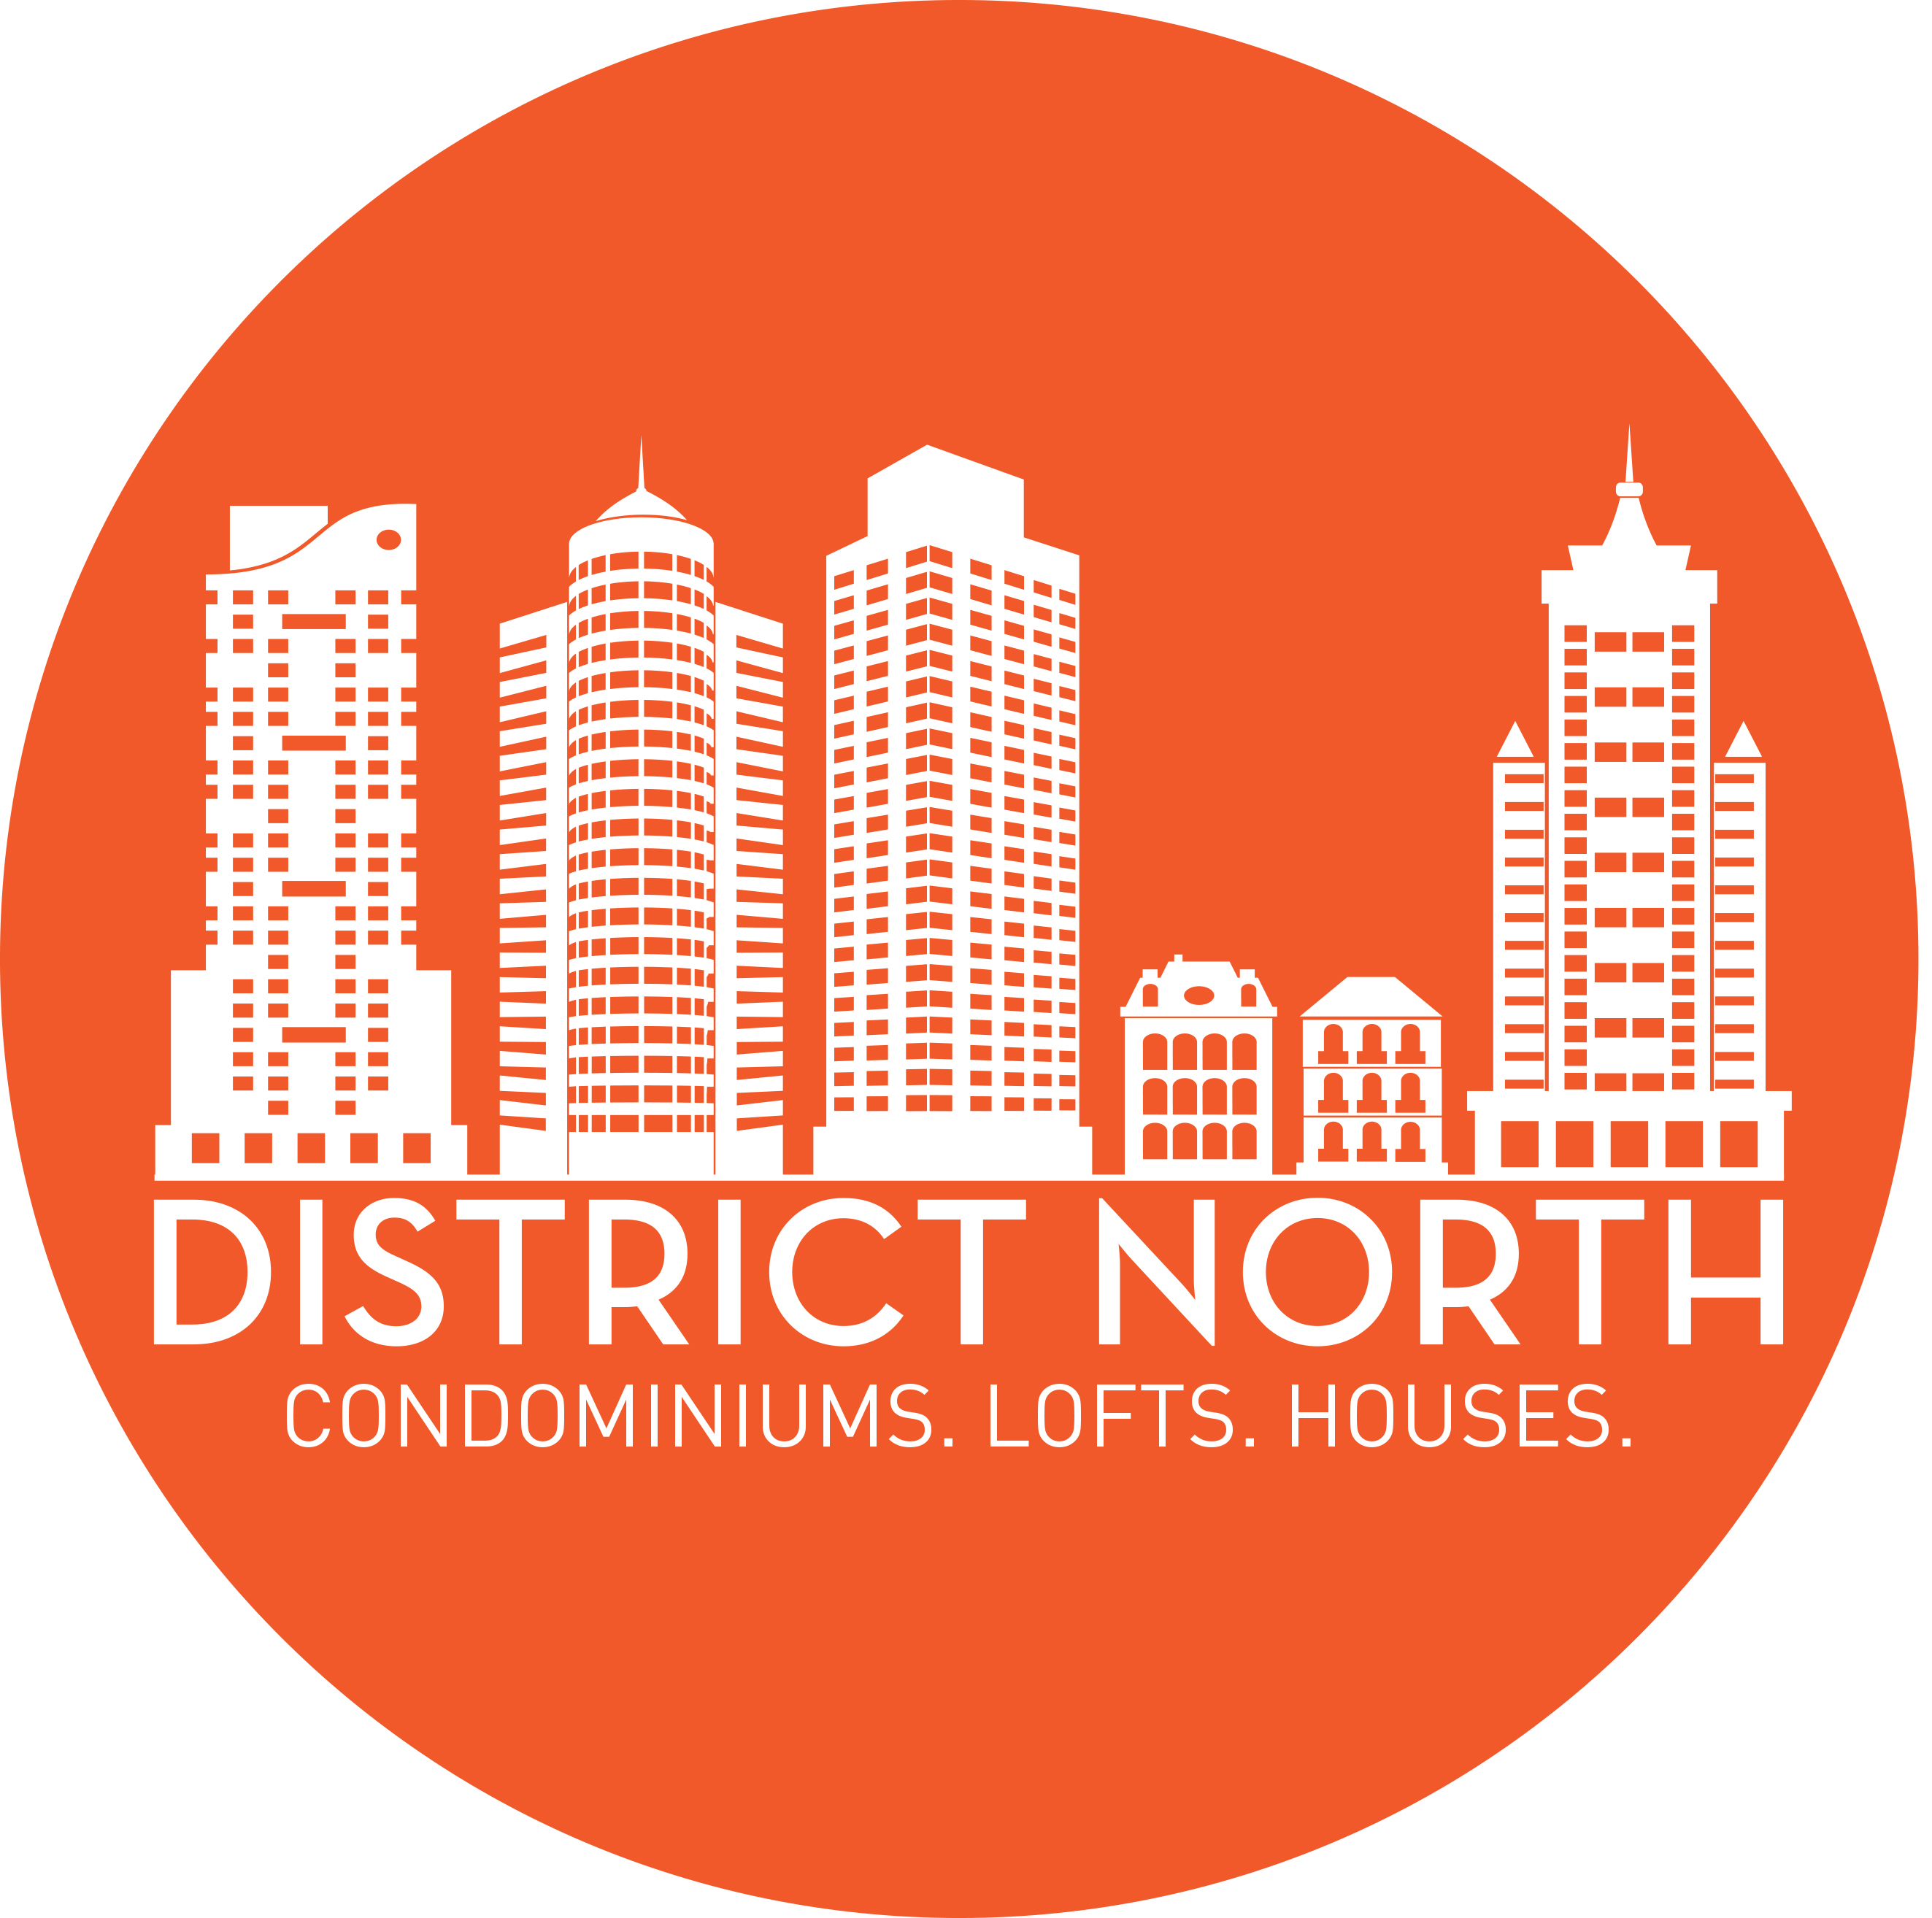 District_North_2_big.jpg